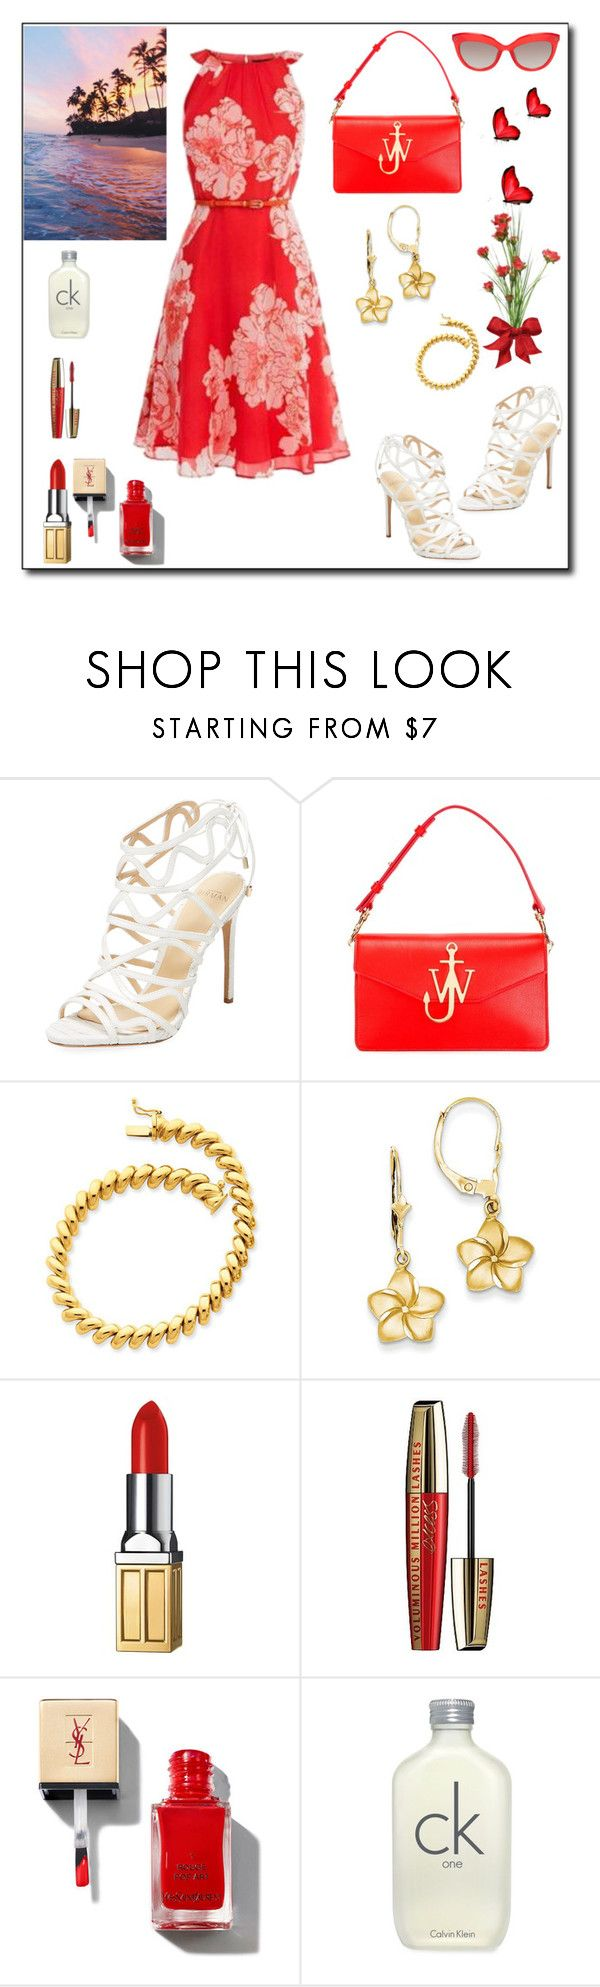 """""""Red Vacation Dress"""" by rboowybe ❤ liked on Polyvore featuring Alexandre Birman, J.W. Anderson, Elizabeth Arden, L'Oréal Paris, Calvin Klein and contestentry"""